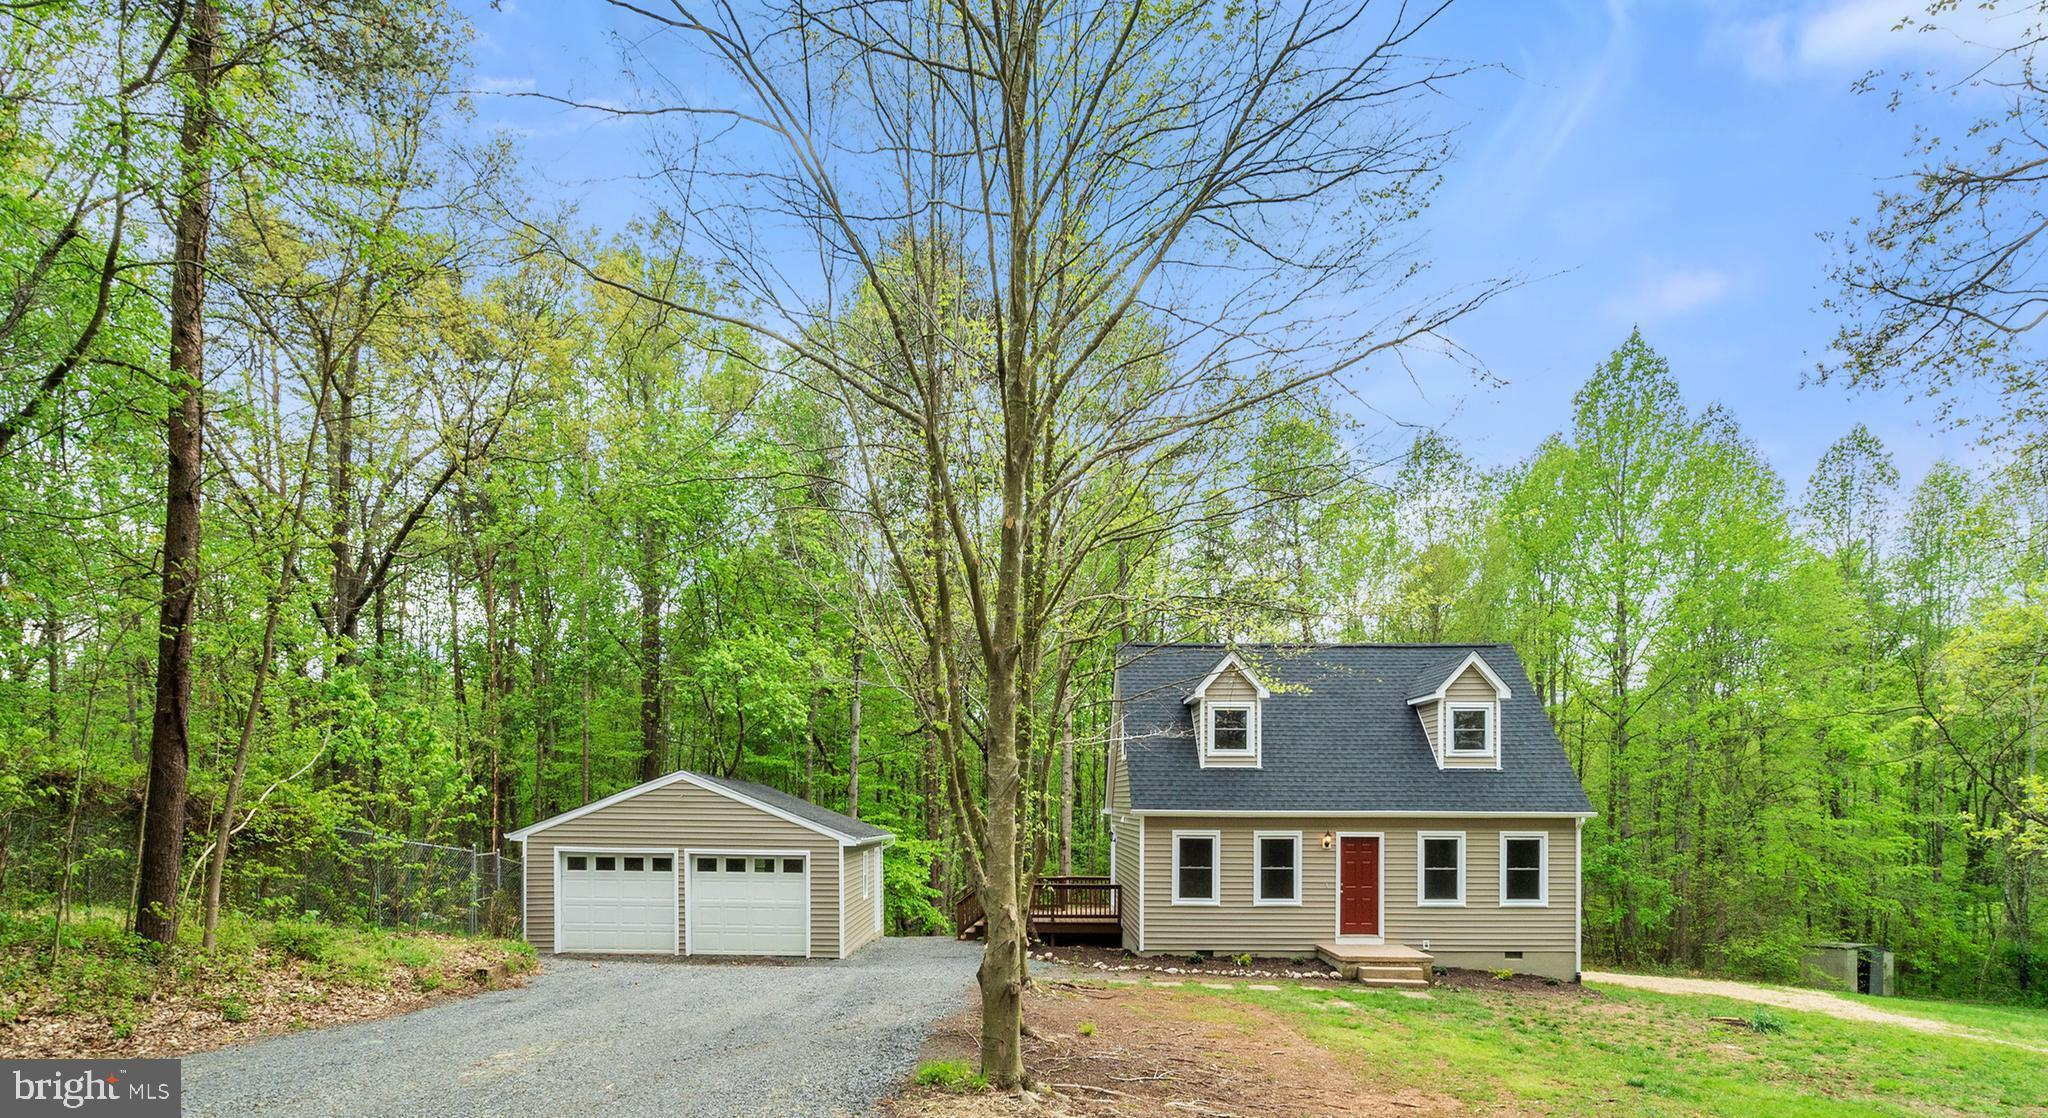 5147 Red Cedar Road, Sumerduck, VA 22742